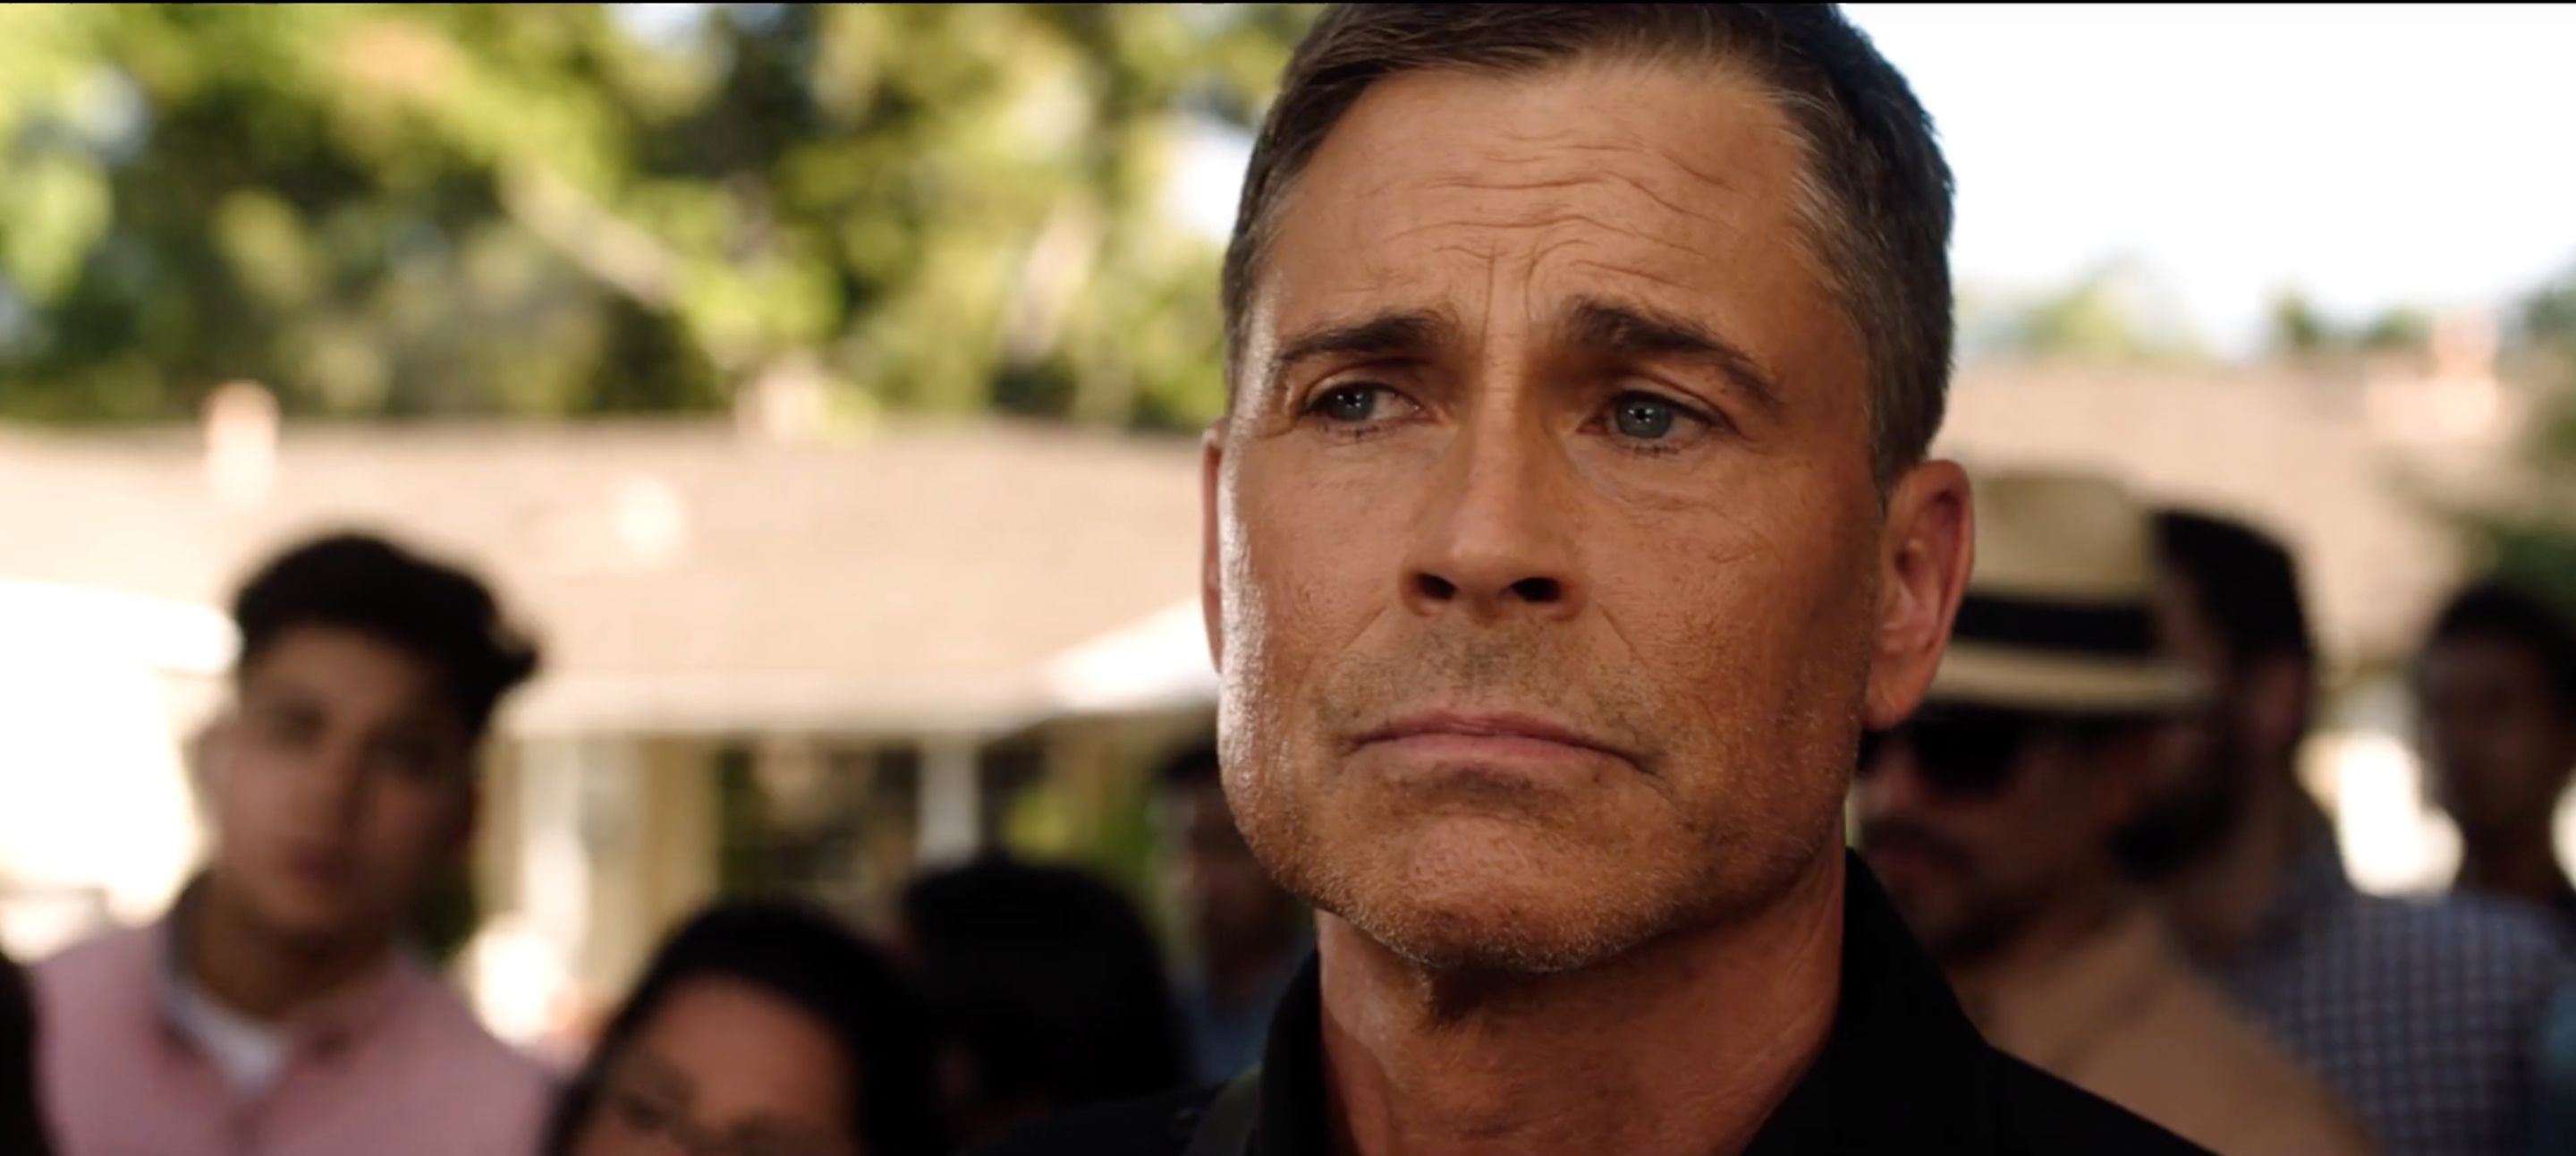 The 9-1-1: Lone Star Trailer Puts Austin in So Much Peril, But At Least There's Rob Lowe